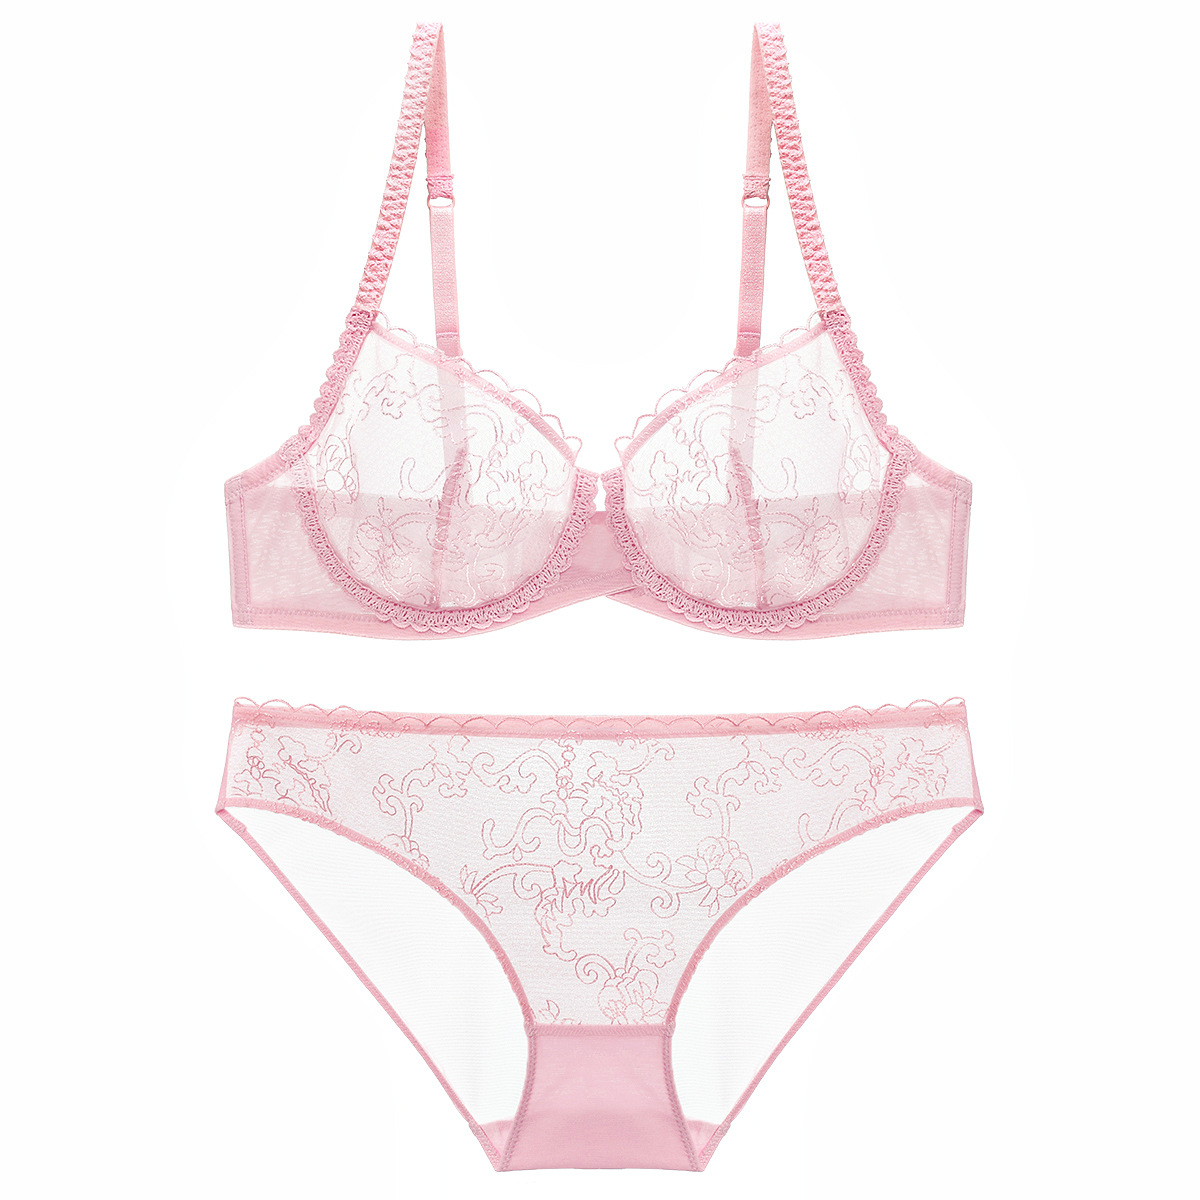 High quality embroidery ultra-thin perspective sexy bra set cute women hot fetish lingerie